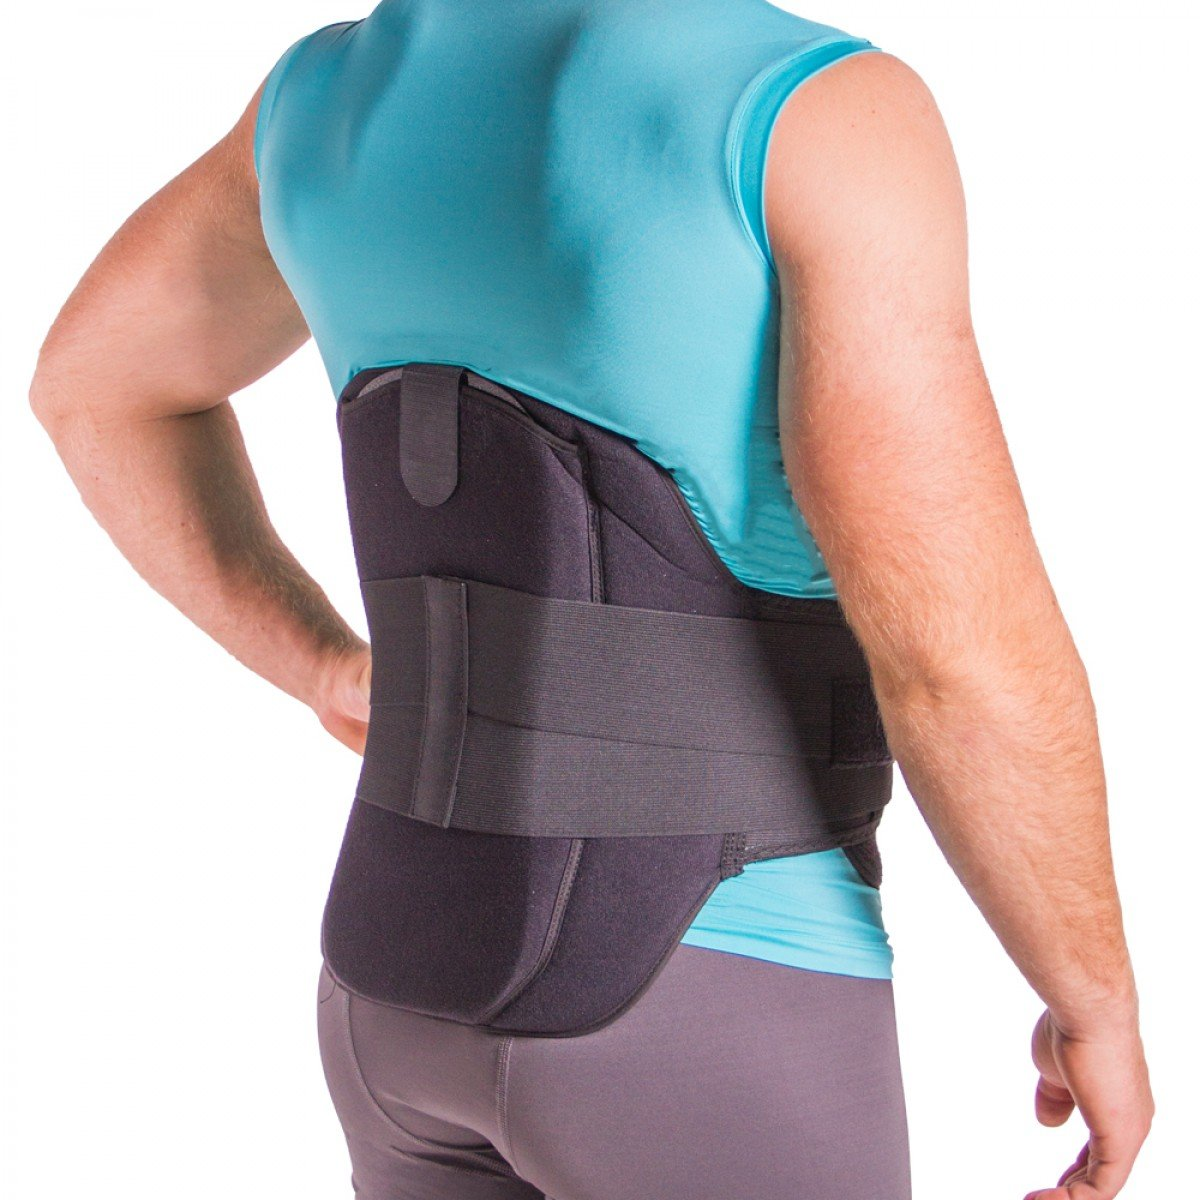 Back Brace for Herniated Disc Treatment, Degenerative Disc Pain, Bulging, Ruptured and Slipped Spinal Discs-S by BraceAbility